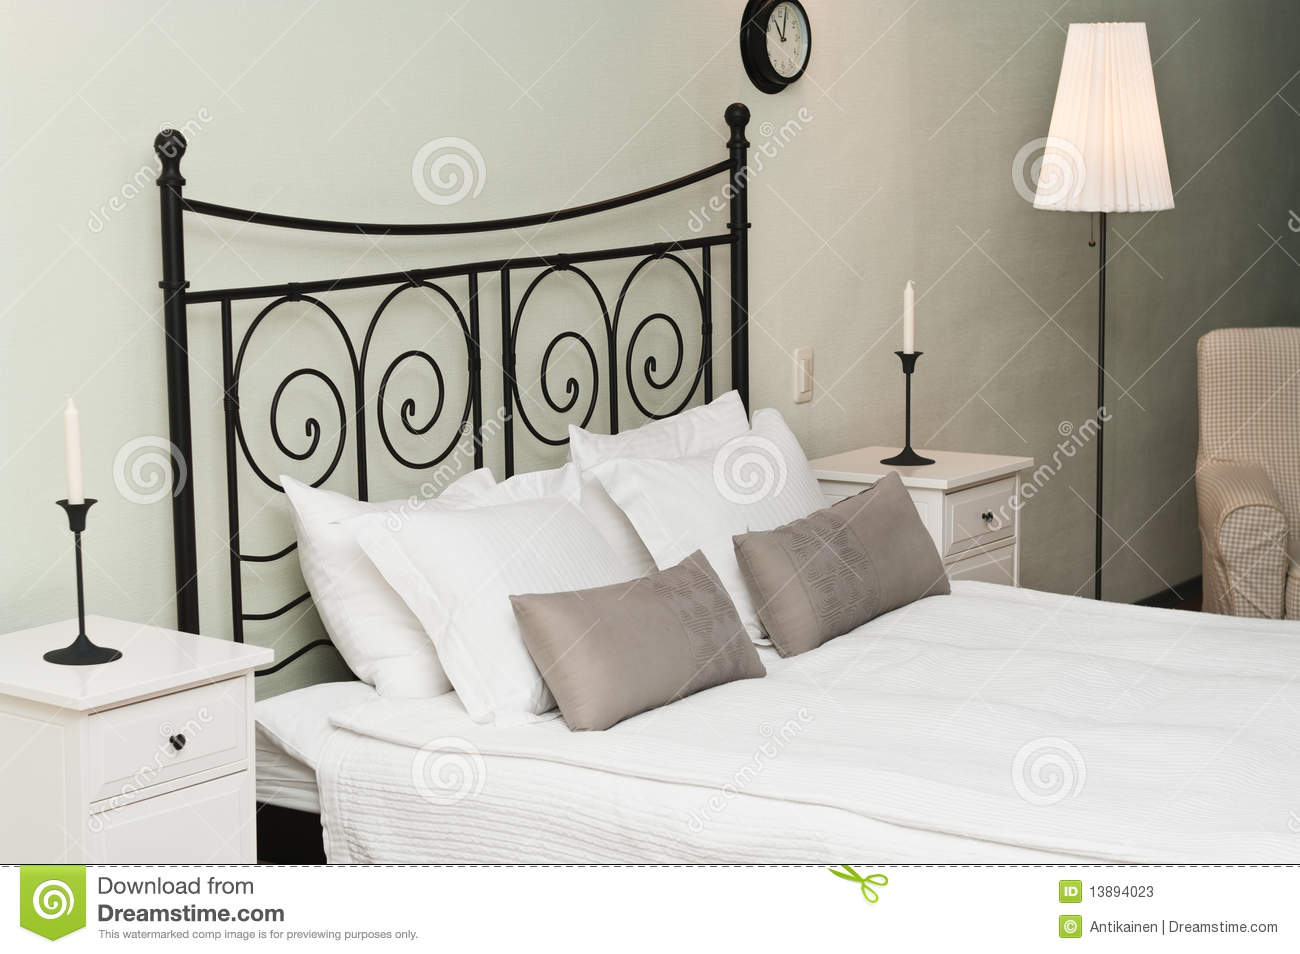 geschmiedetes bett mit kissen stockbild bild 13894023. Black Bedroom Furniture Sets. Home Design Ideas